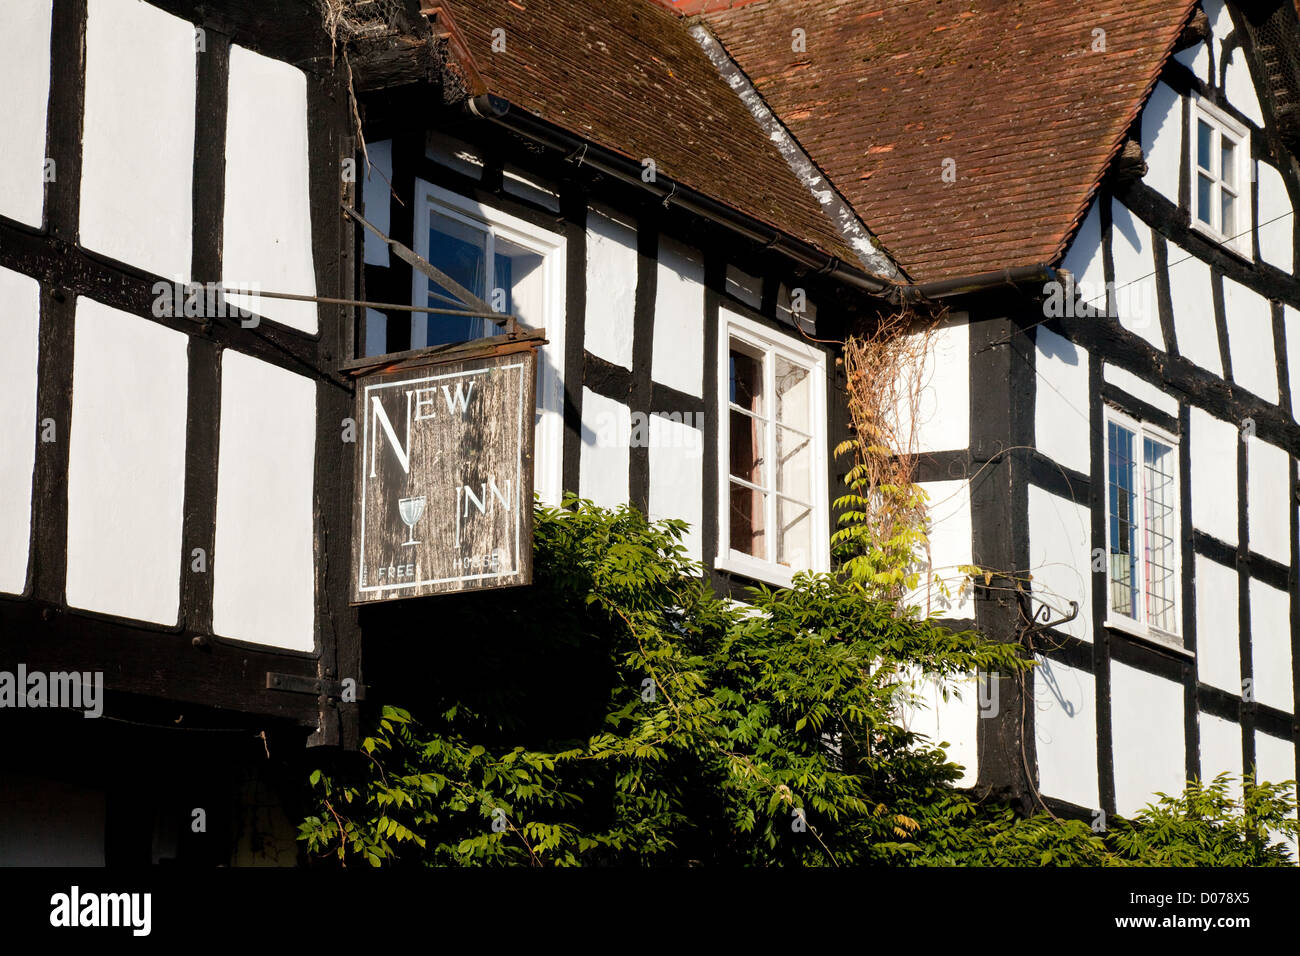 The half timbered 14th century New Inn in Pembridge village Herefordshire England UK - Stock Image